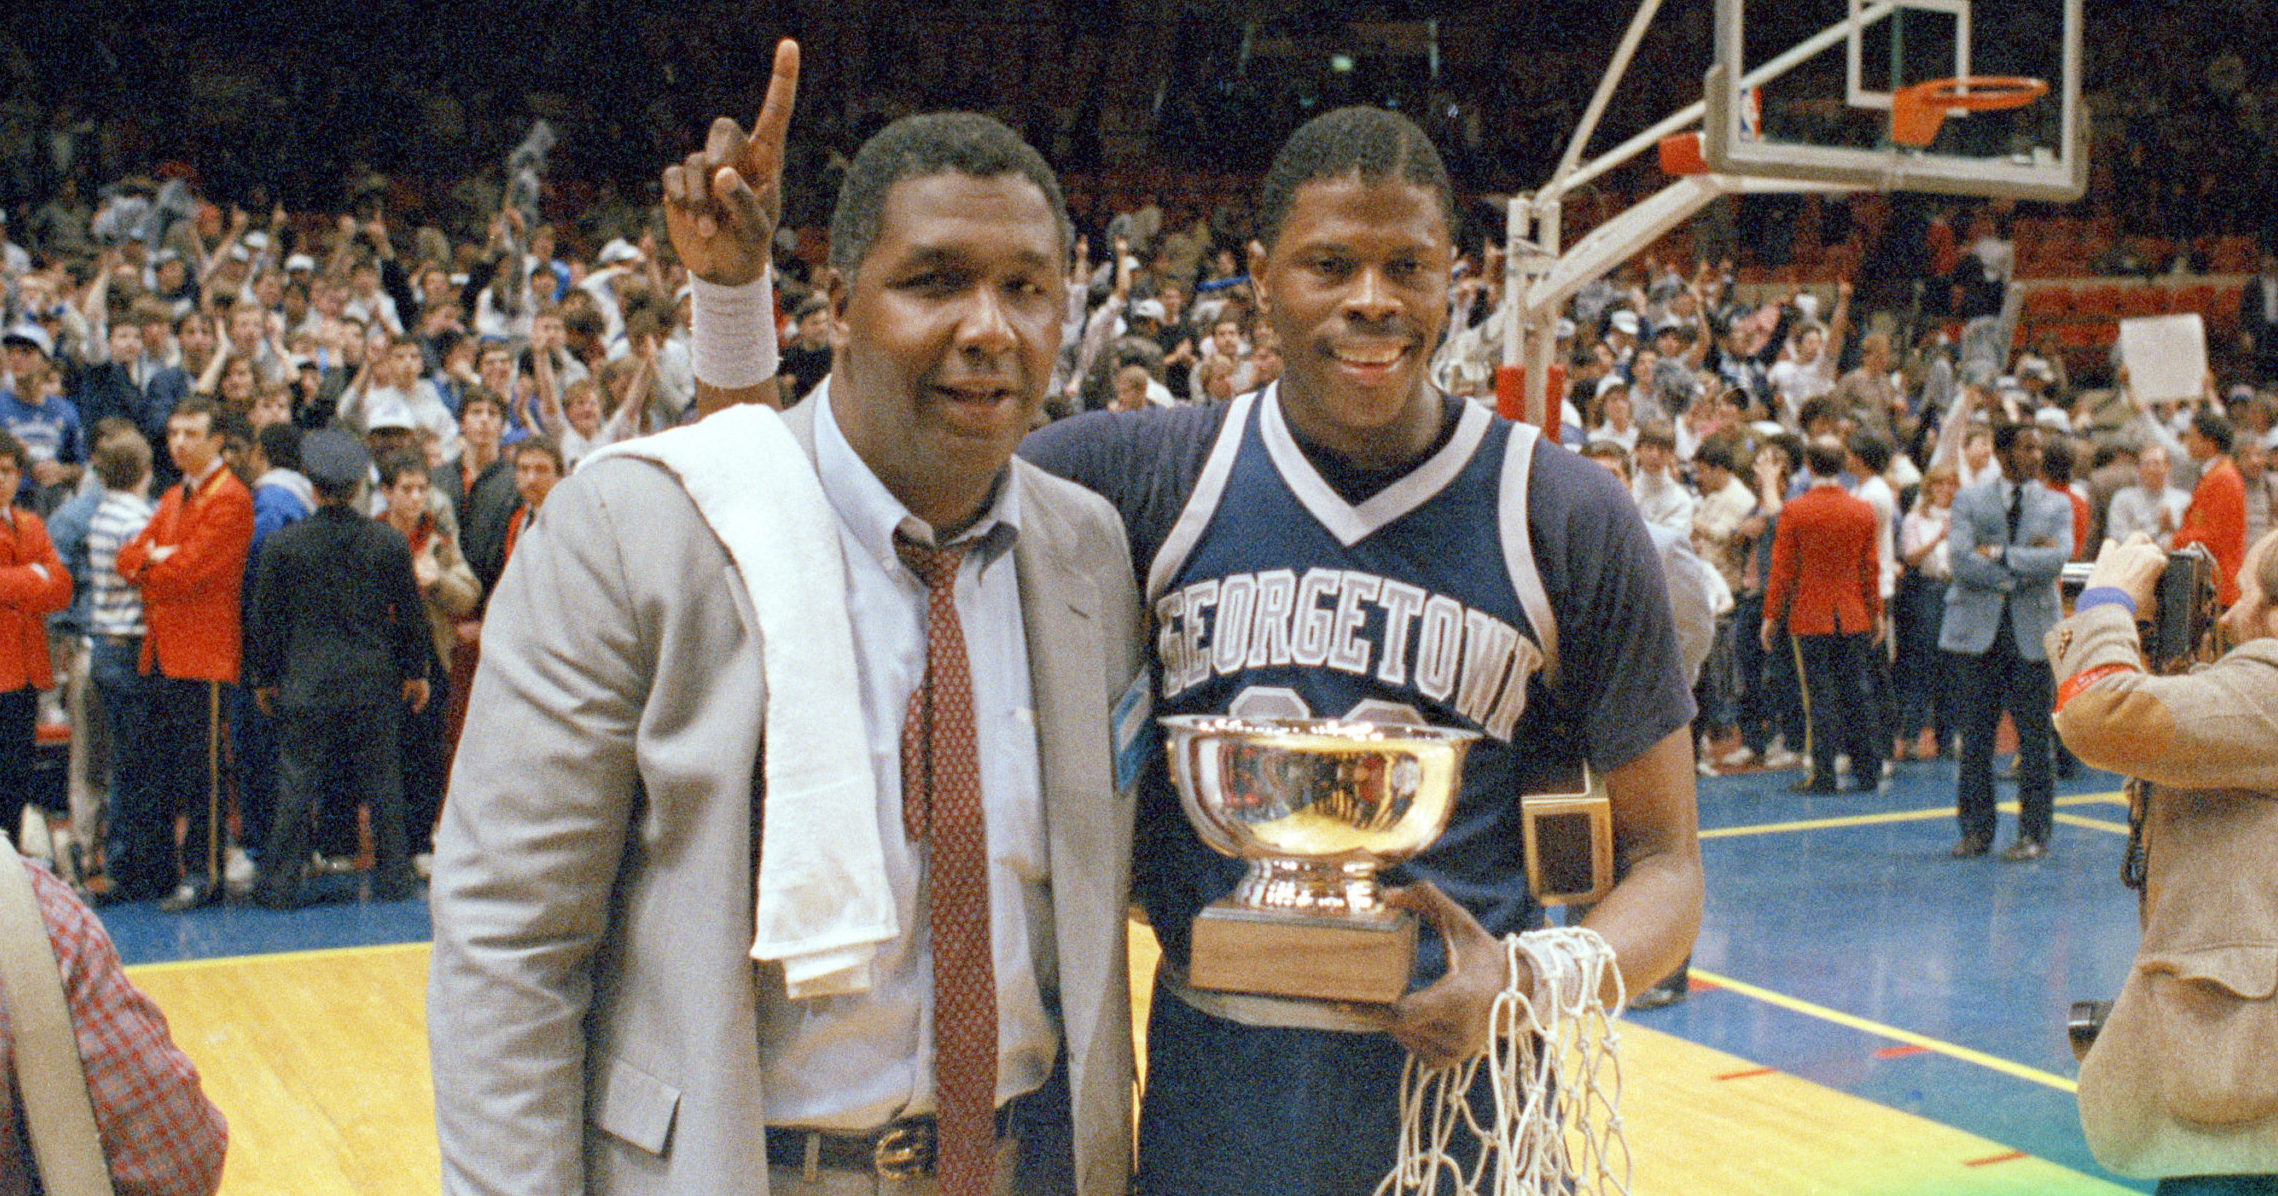 Georgetown head coach John Thompson poses with Patrick Ewing after the Hoyas defeated Houston in the NCAA basketball championship game in Seattle on March 9, 1985.